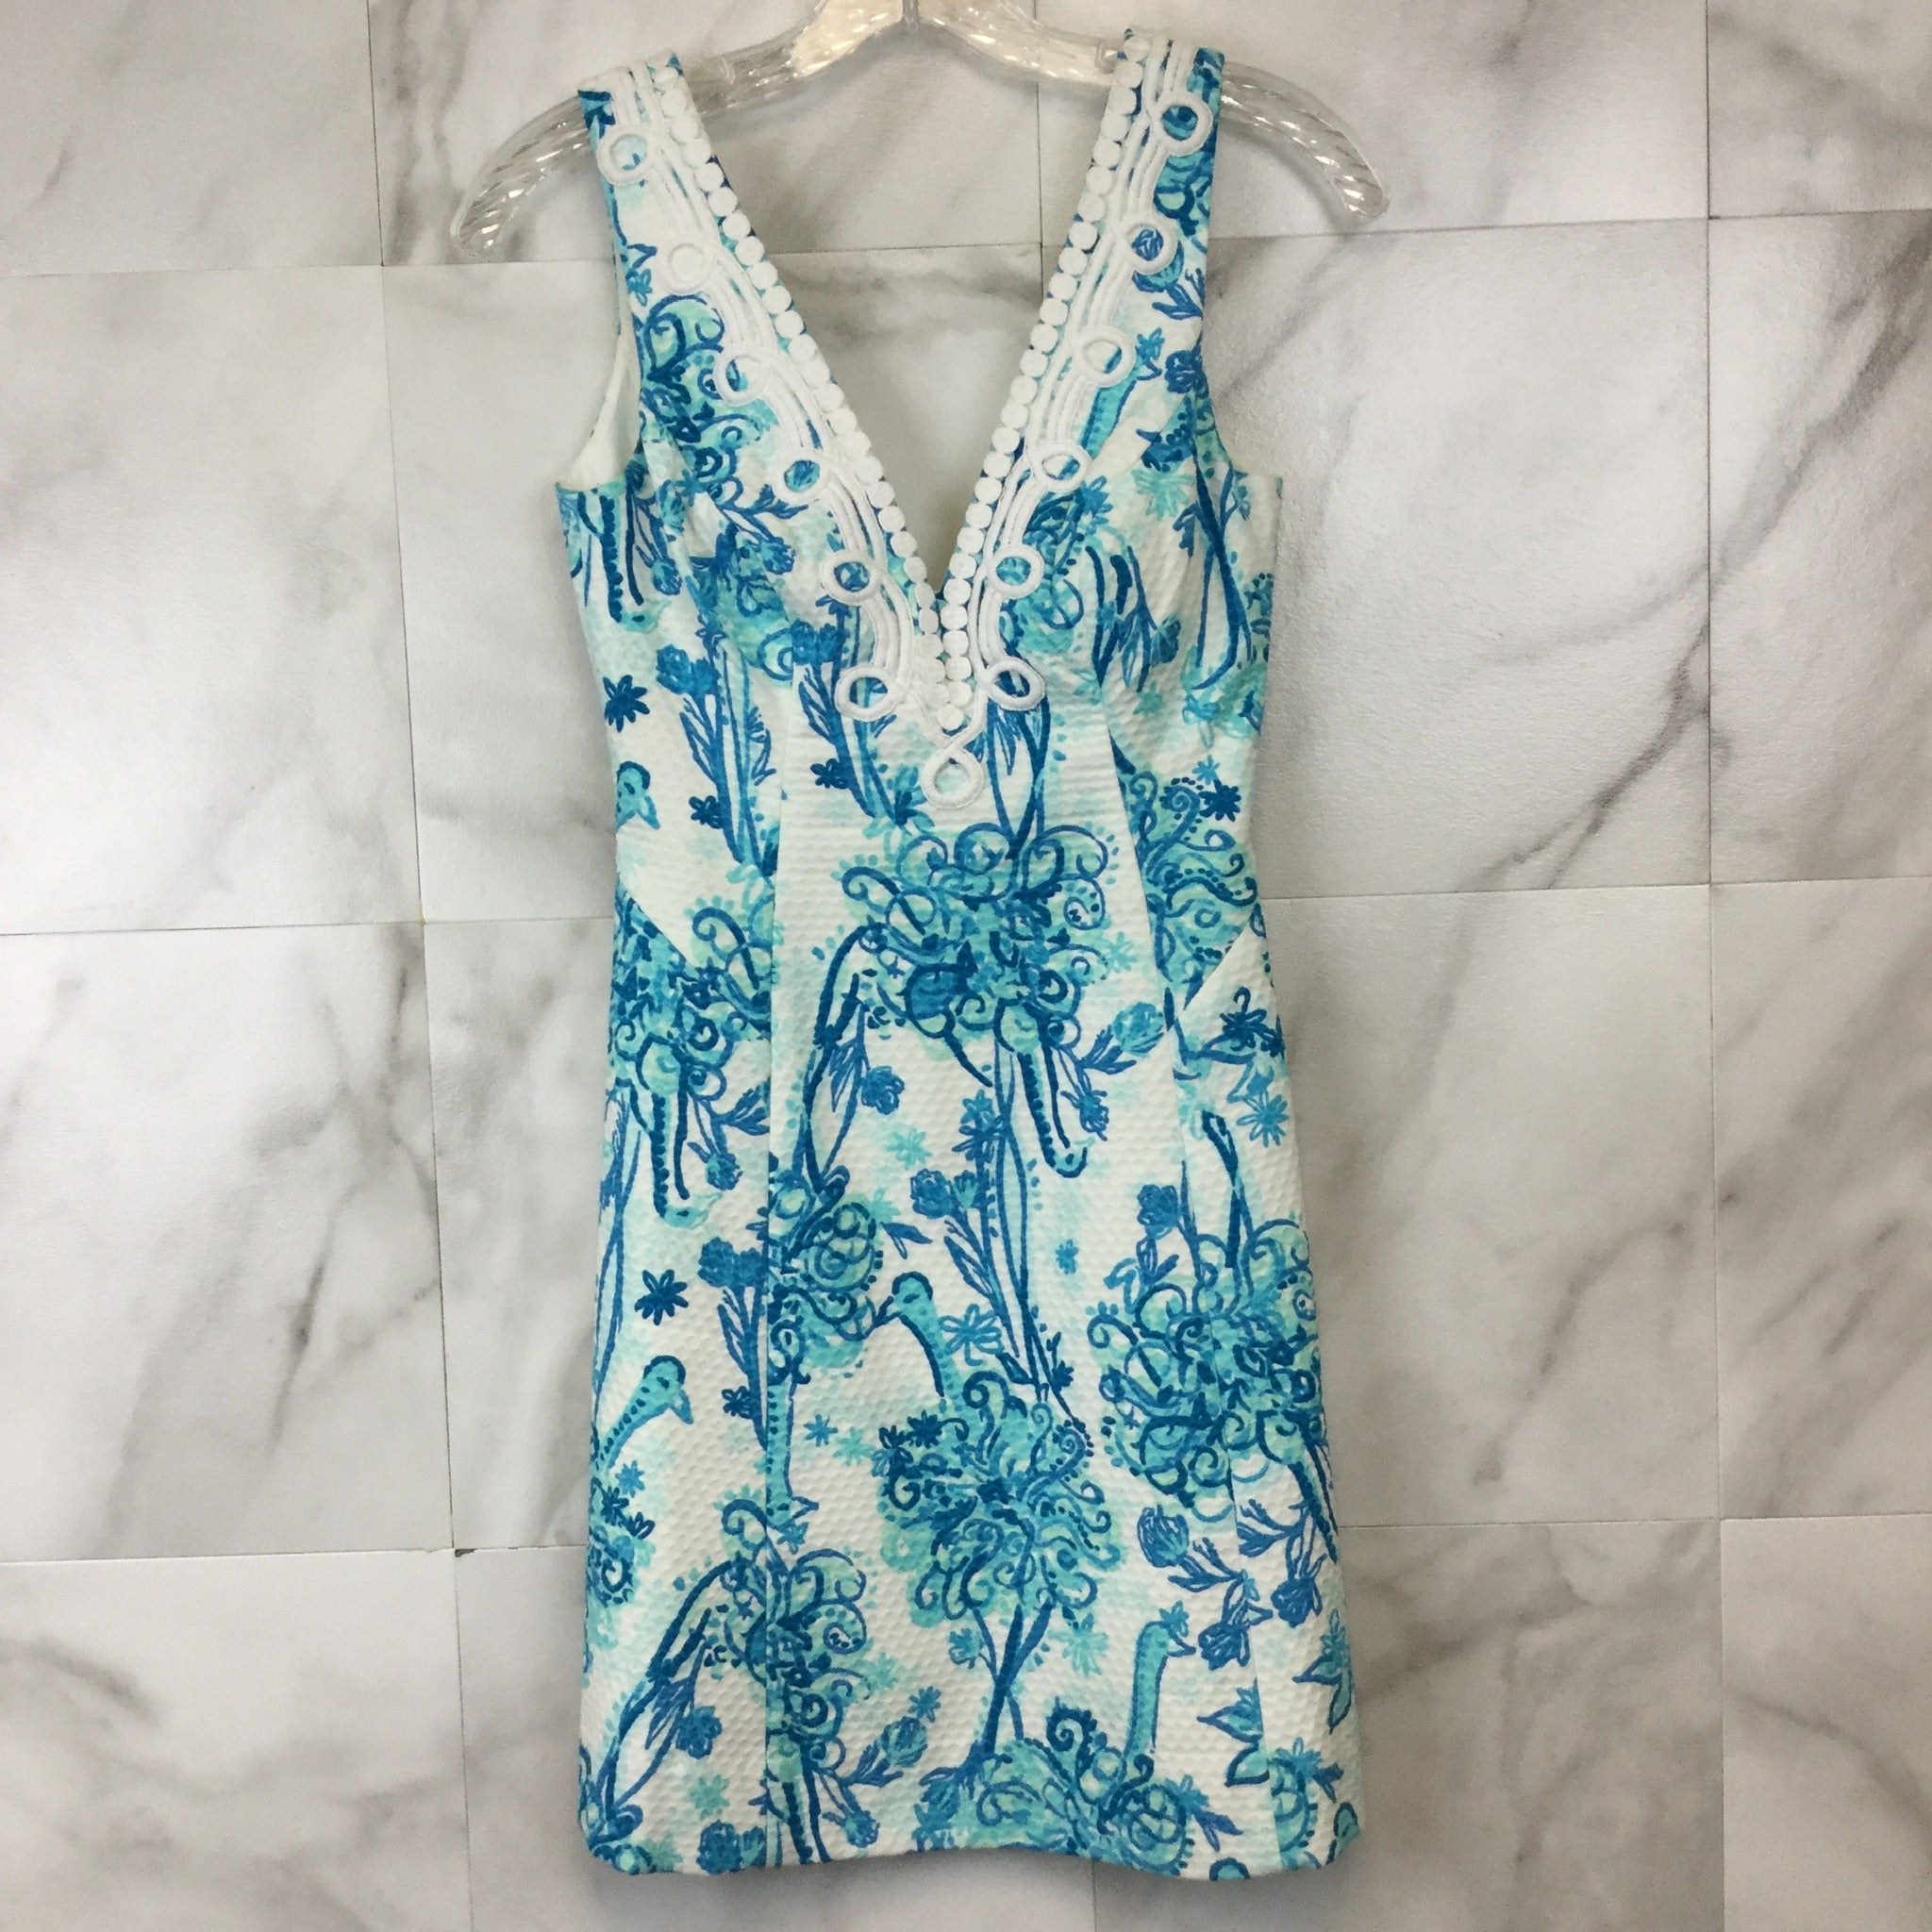 Lilly Pulitzer Brynn Dress - size 00